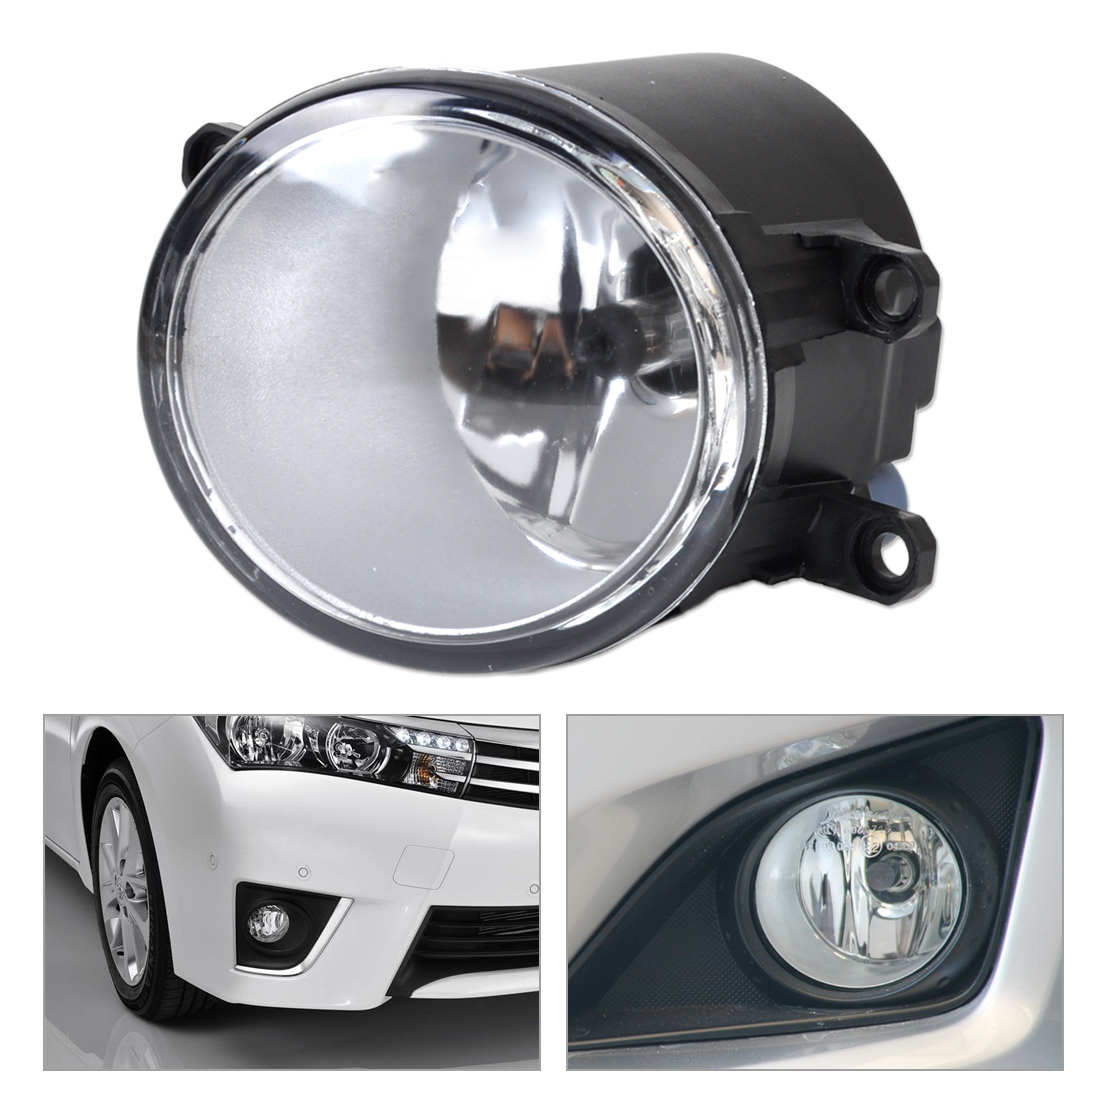 #beler Left Side Fog light Lamp for Toyota Camry Corolla RAV 4 Yaris Highlander Prius Lexus GS350 GS450h LX570 HS250h IS-F RX350<br><br>Aliexpress